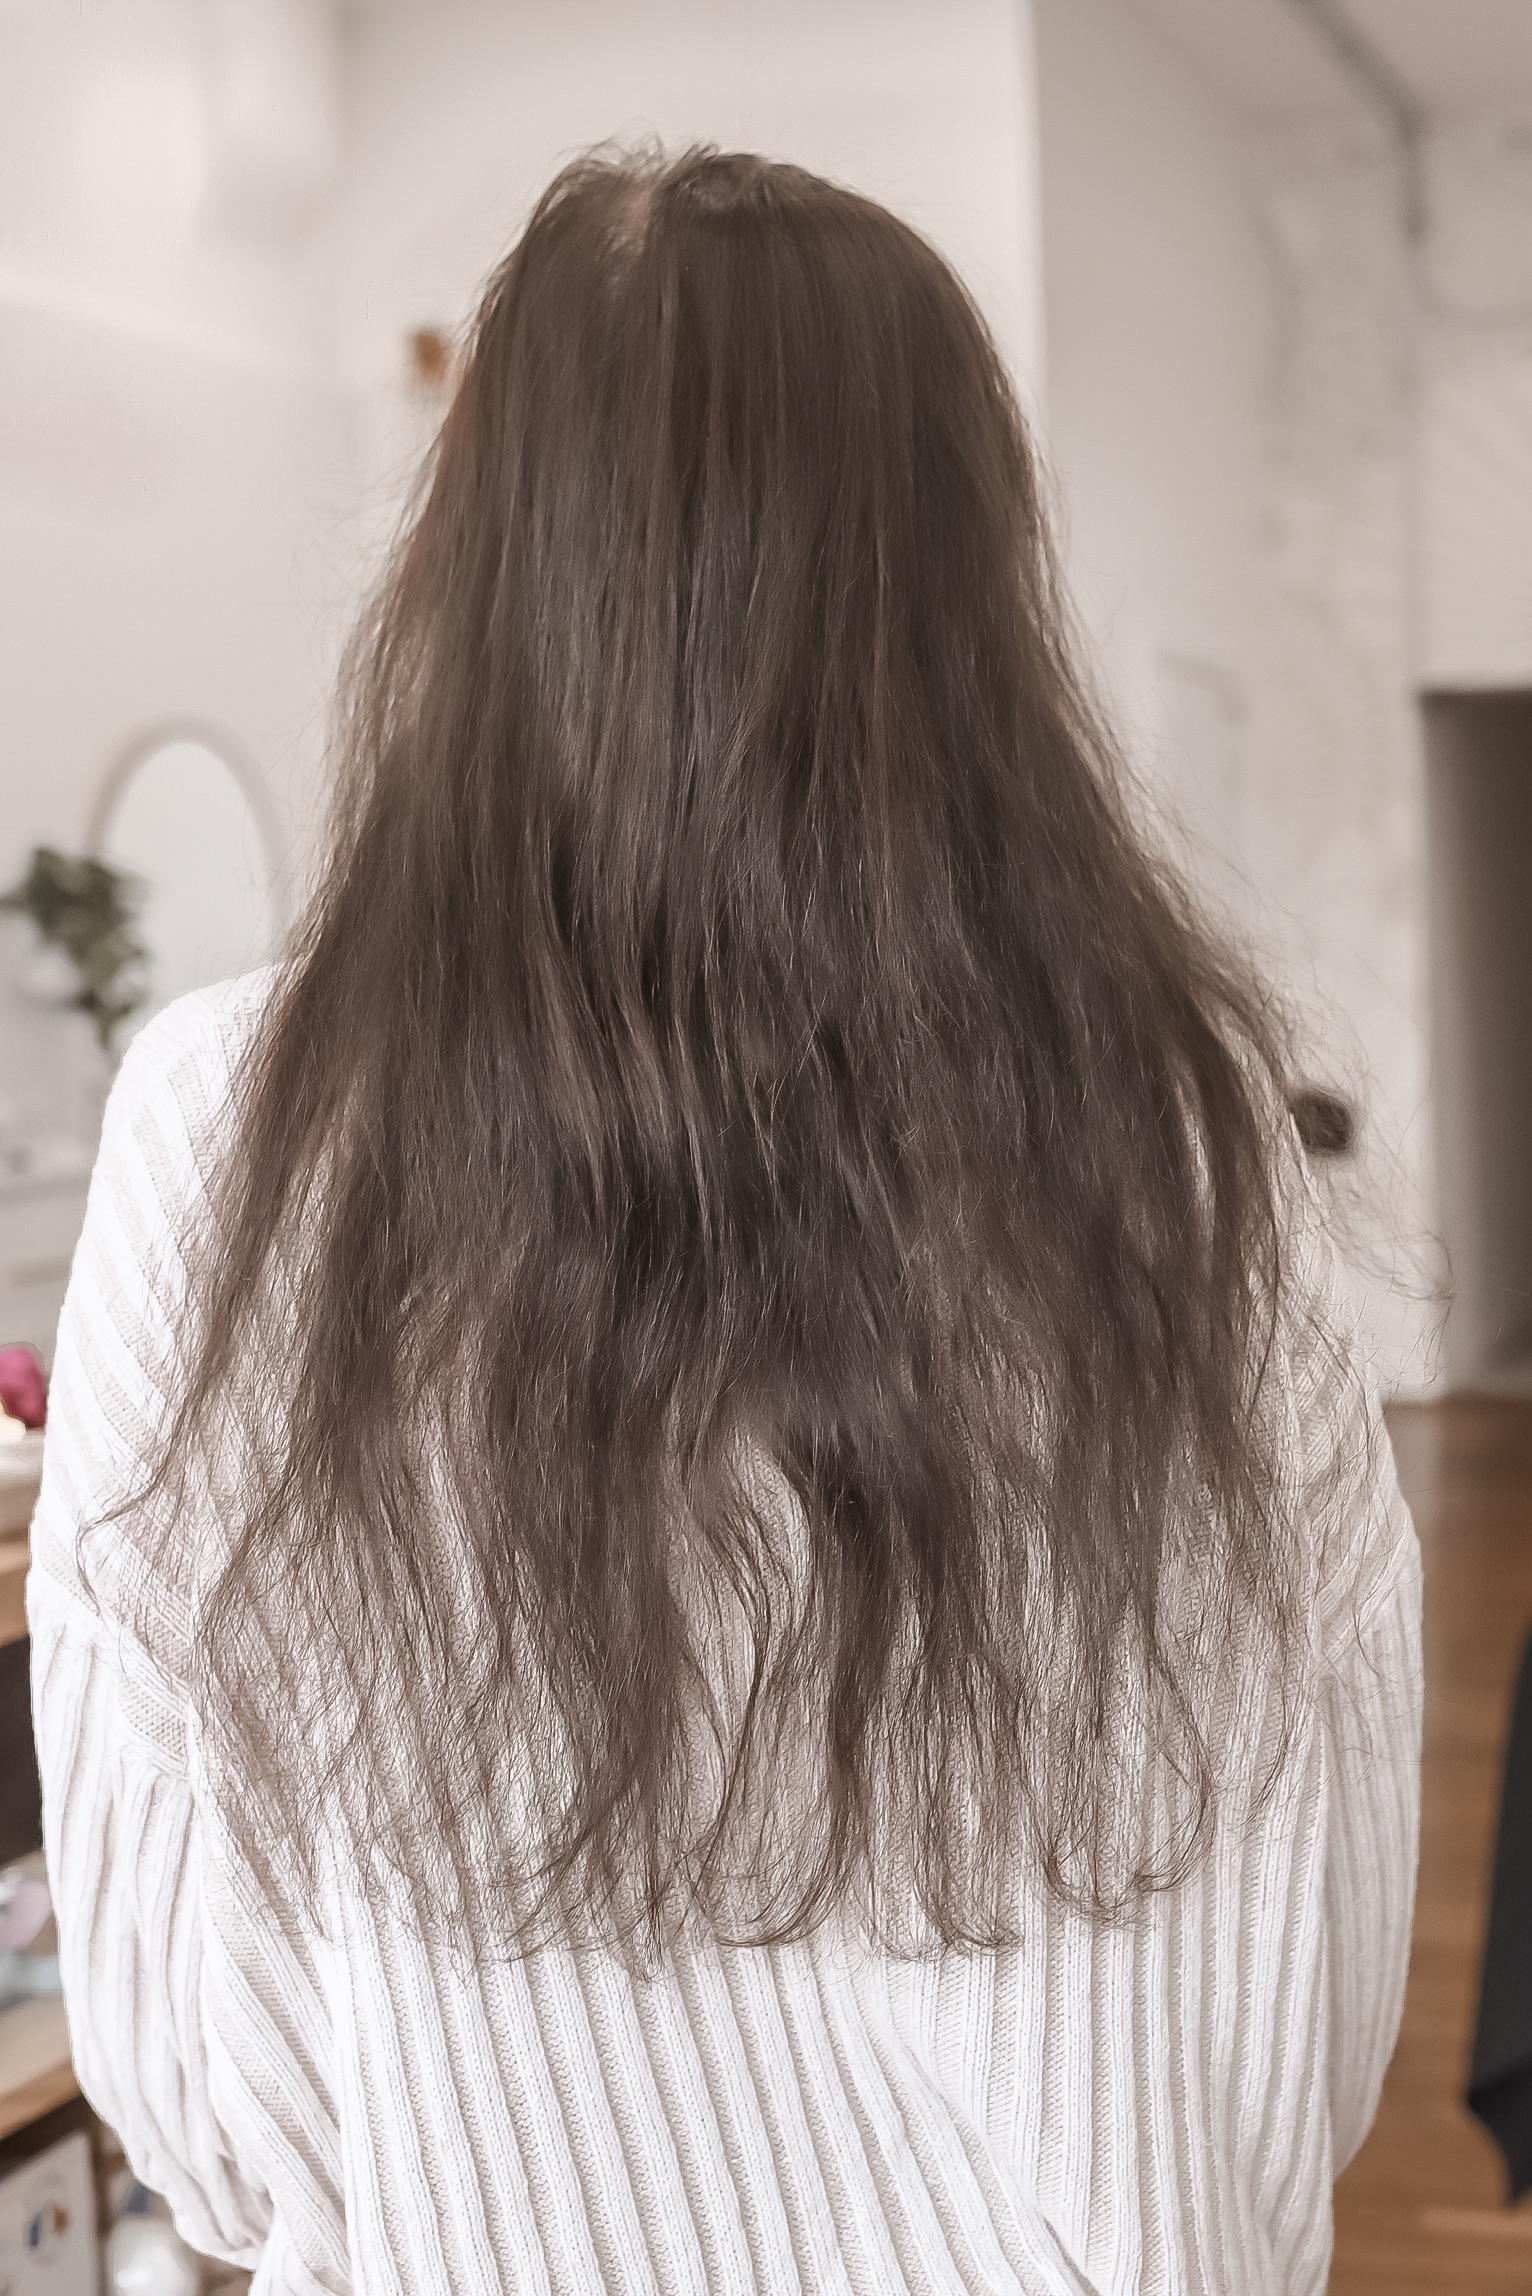 Hair Extensions FAQs Before